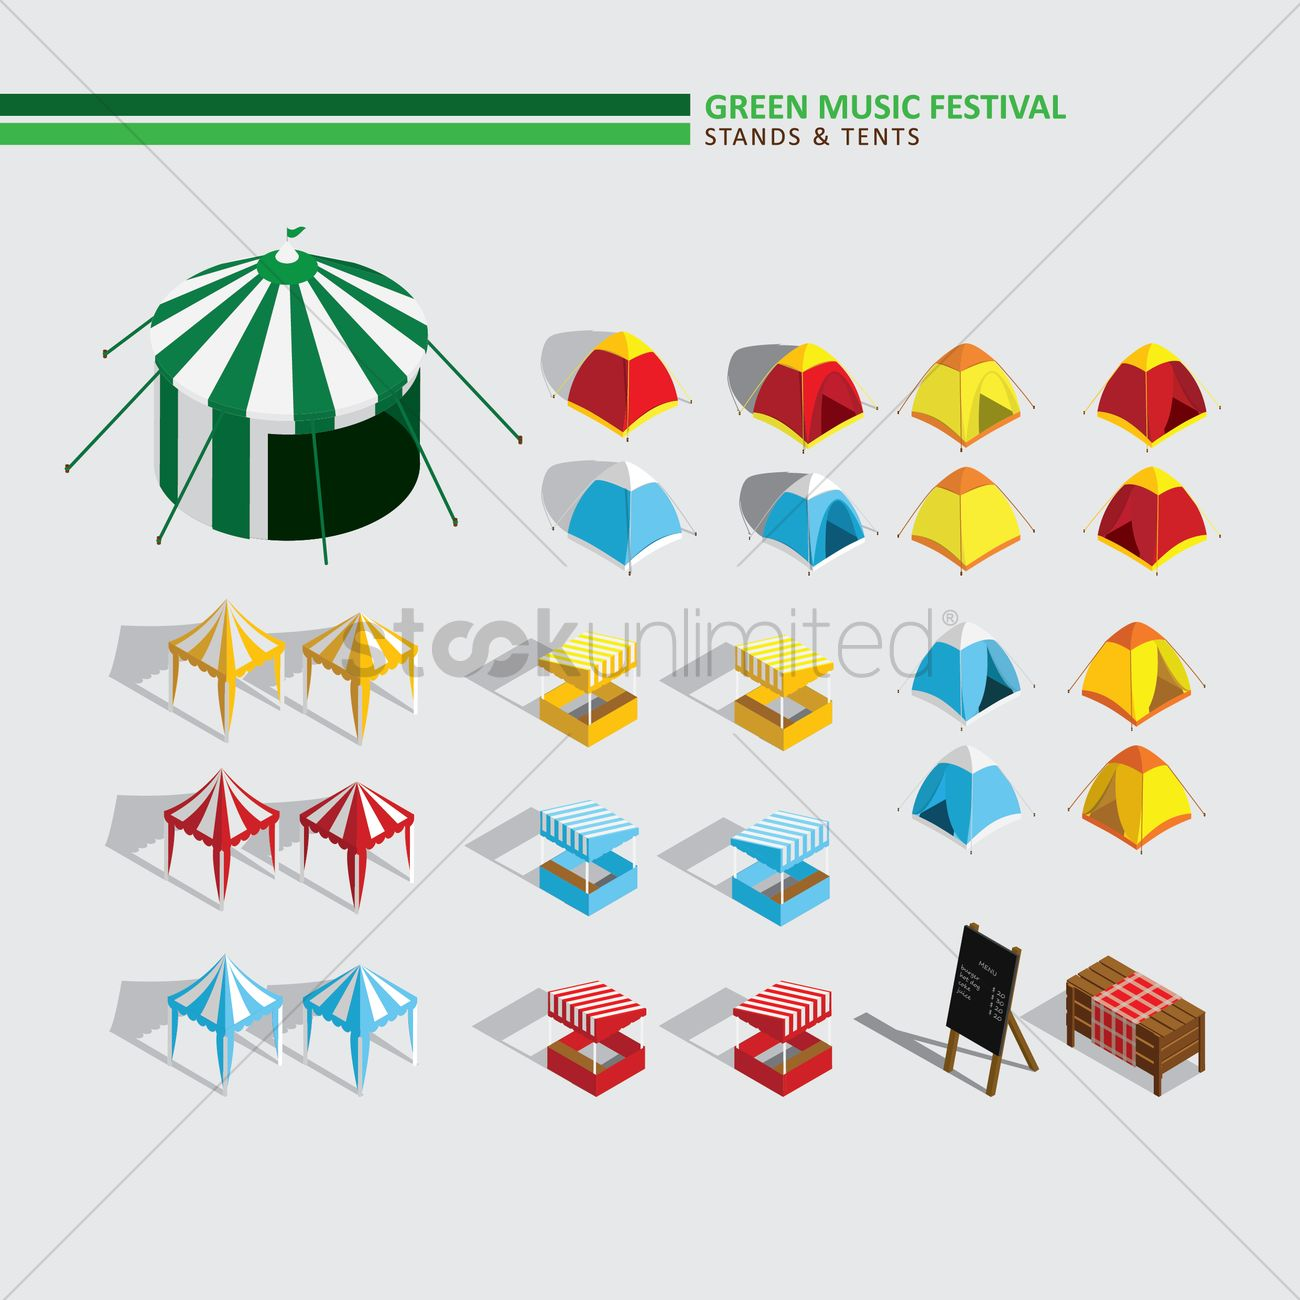 Green music festival stands and tents Vector Image.